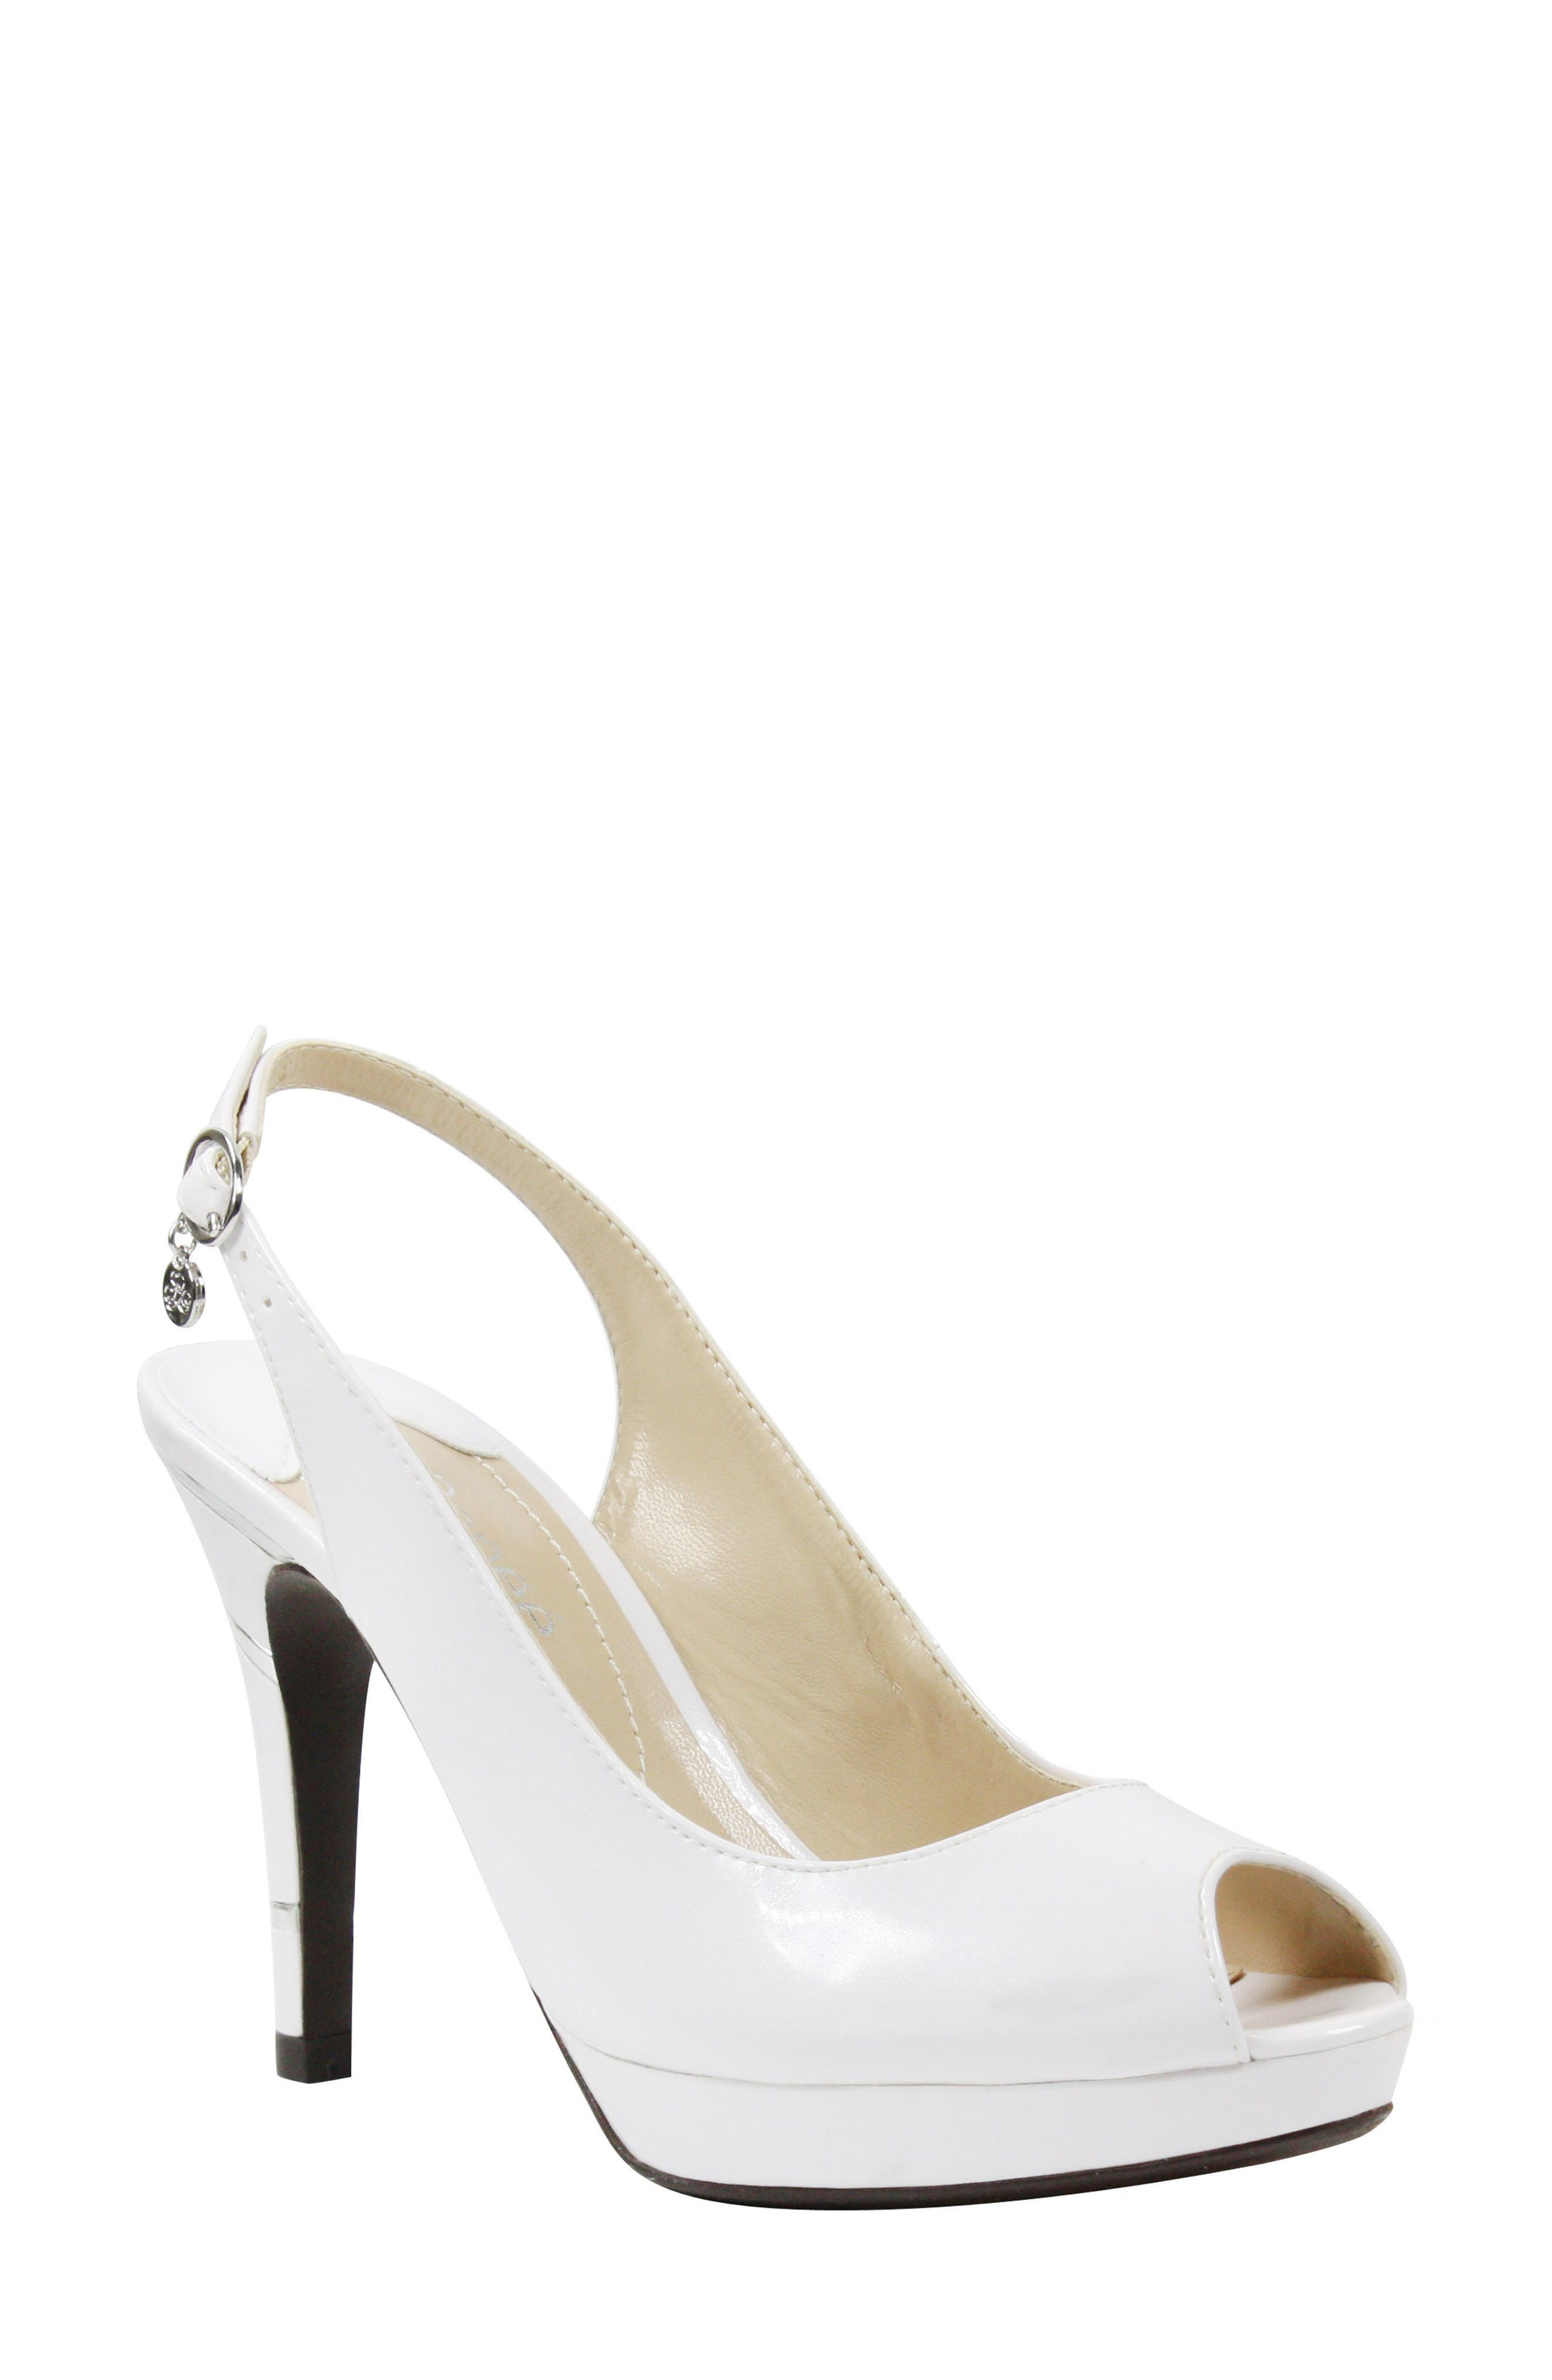 Onille Slingback Pump,                             Main thumbnail 1, color,                             Pearl White Faux Leather